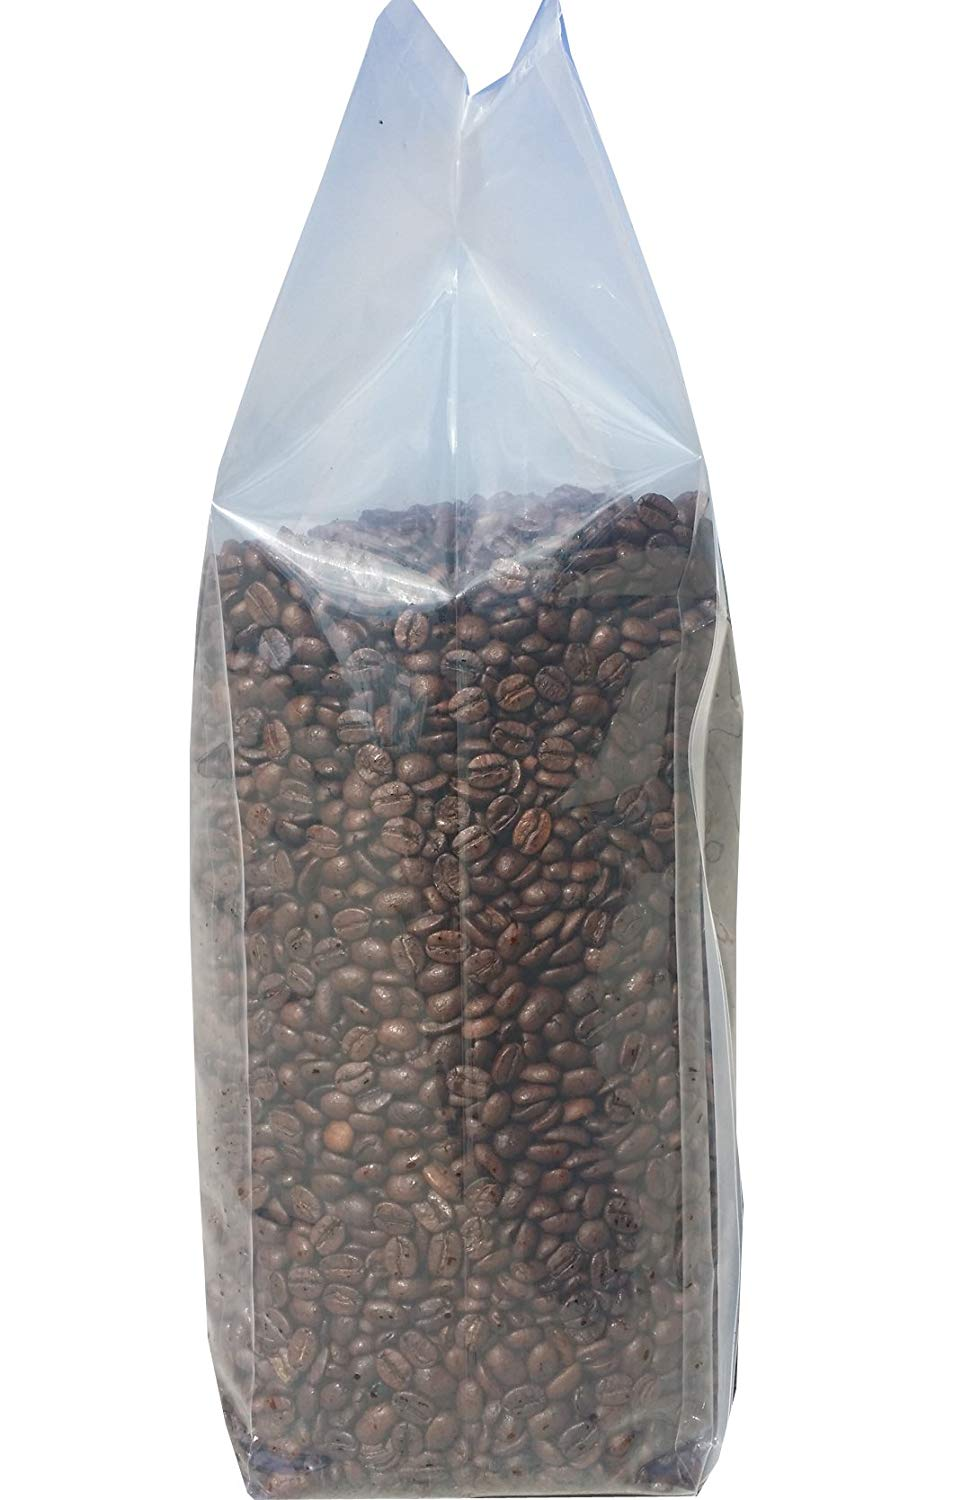 Culinary Coffee Roasters- Colombian Supremo, Medium to Dark Roasted Whole Bean Coffee, 5-pound Bag Amazon Special 100% Satisfaction Guaranteed!